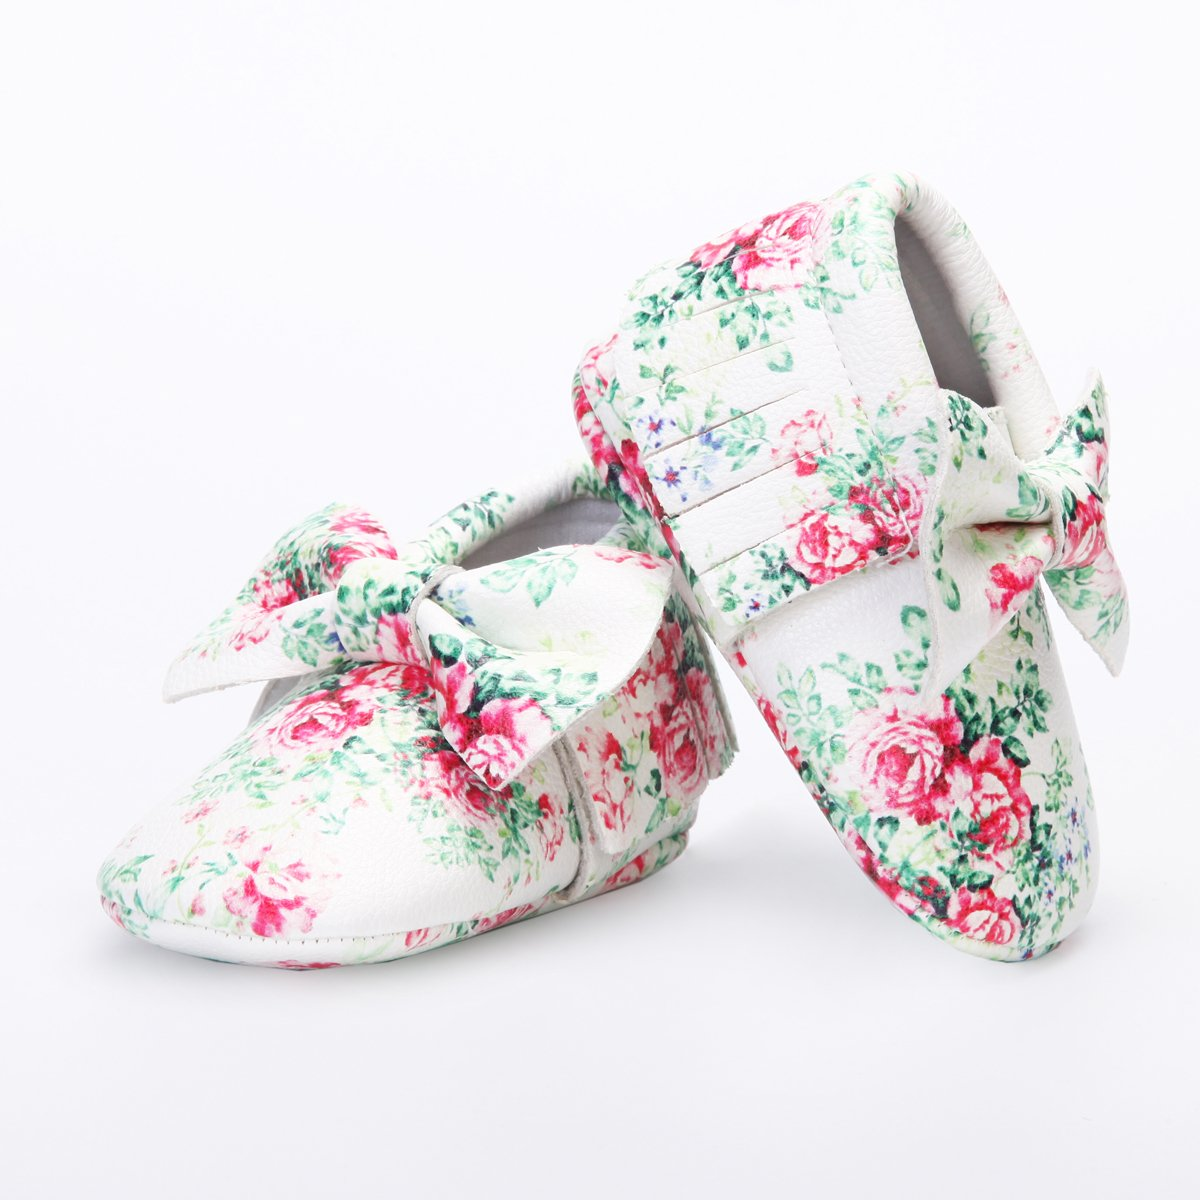 HONGTEYA Baby Moccasins with Rubber Sole/&Soft Sole Flower Print PU Leather Tassel Bow Girls Ballet Dress Shoes for Toddler